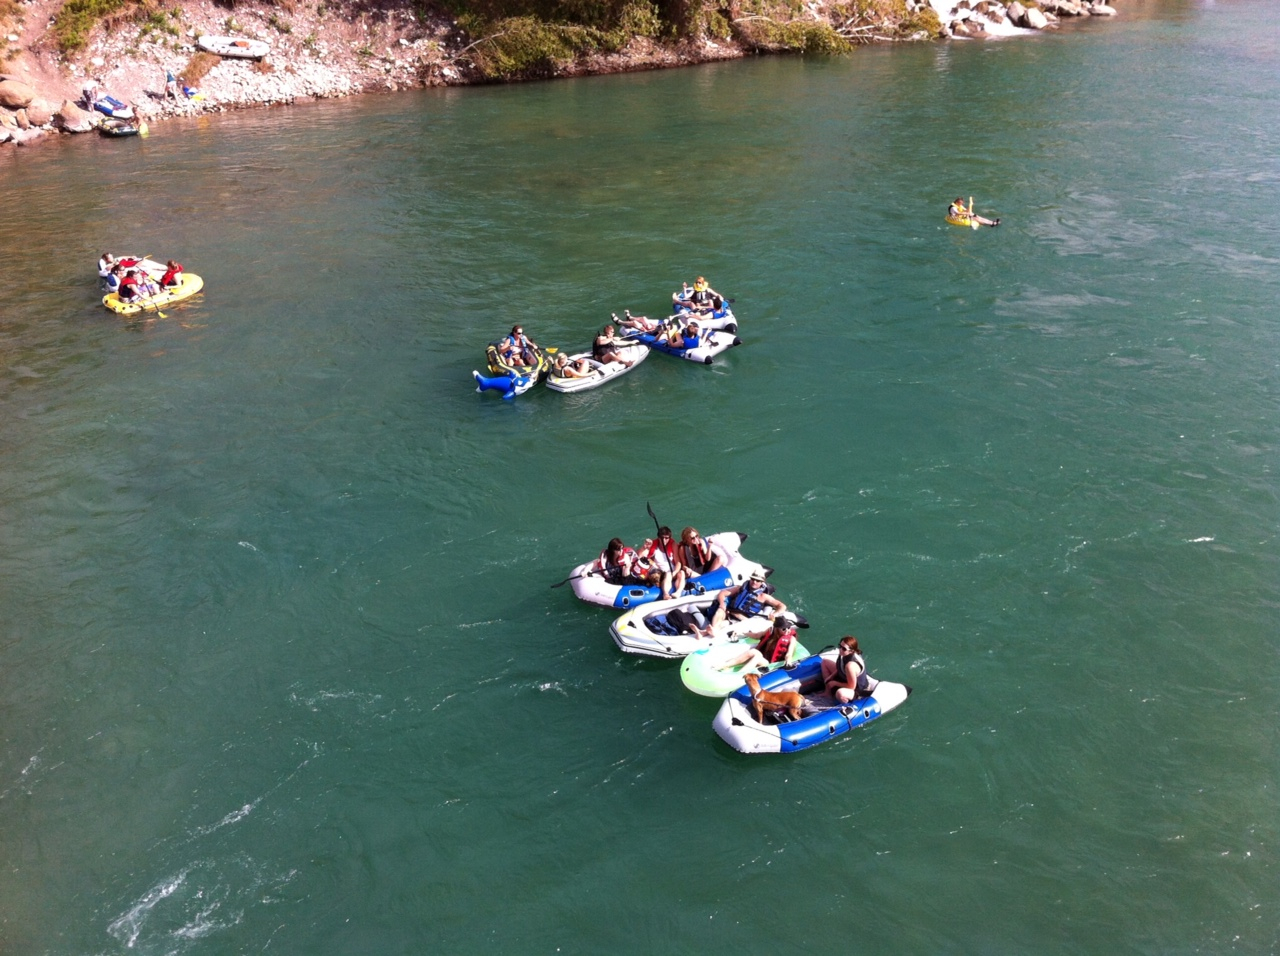 Rafting along the Bow River has become a very popular summer activity for Calgarians and tourists. On a hot summer day hundreds maybe thousands of rafters enjoy one of the world's great urban rivers.